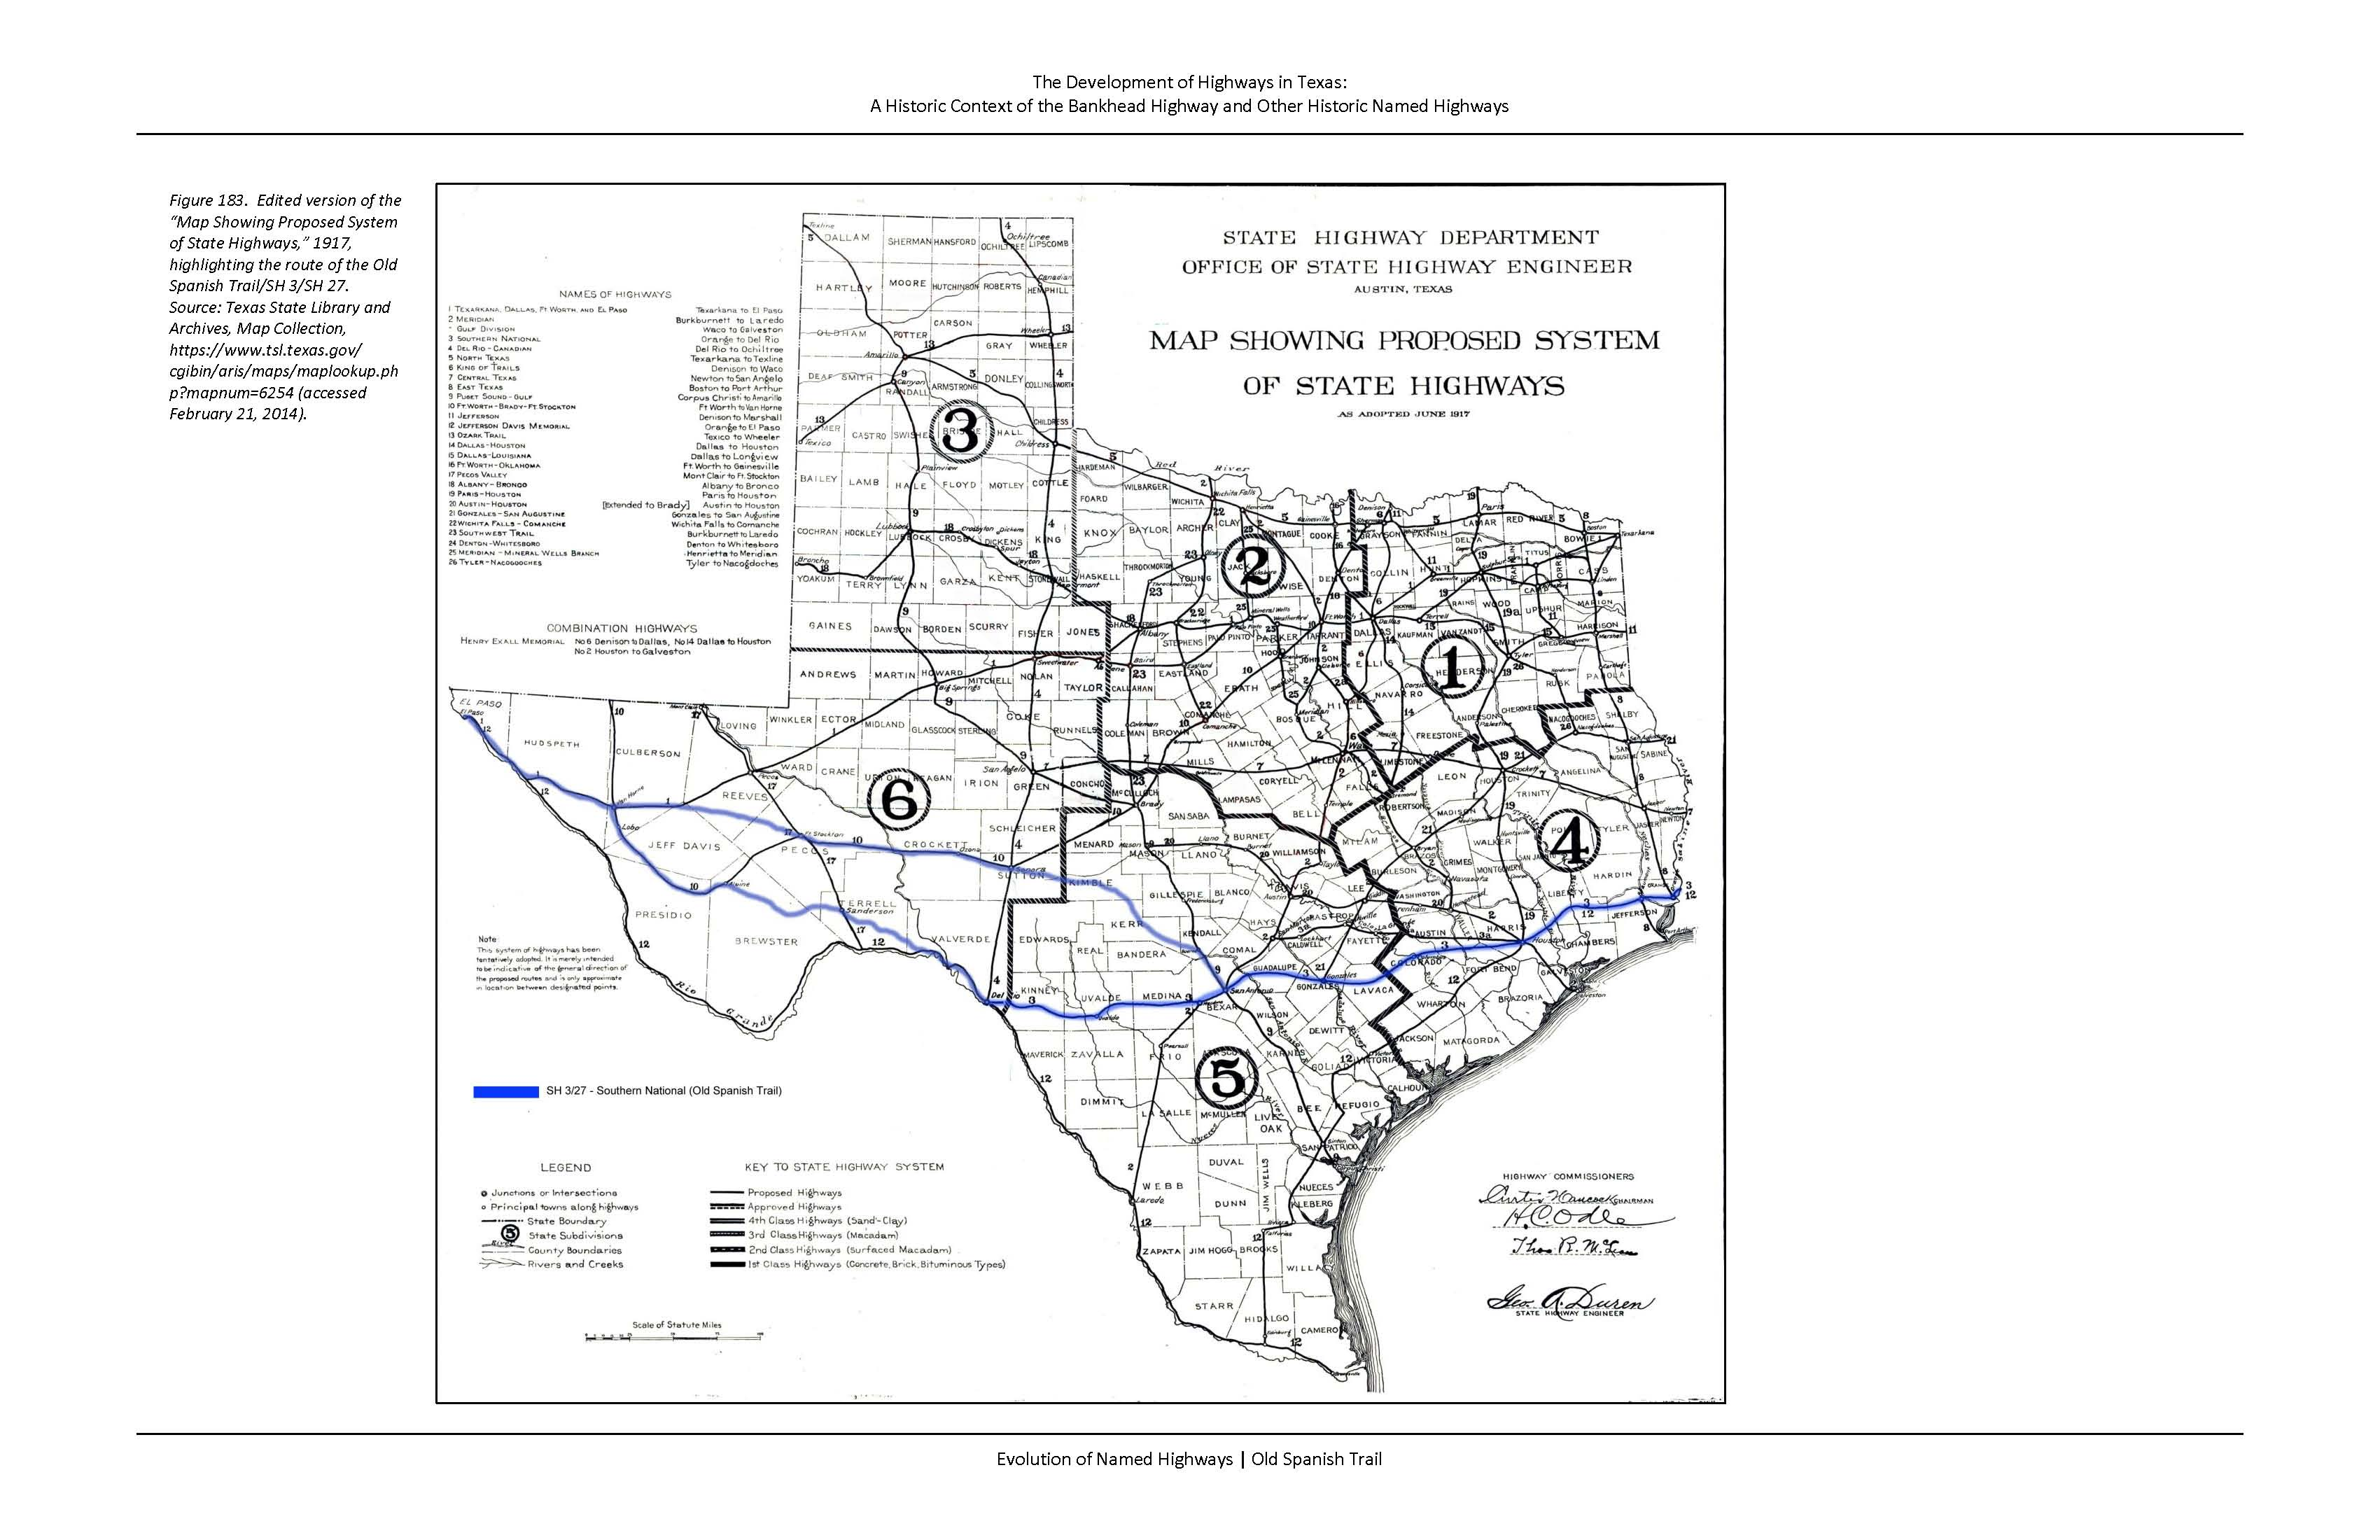 Old Spanish Trail THCTexasgov Texas Historical Commission - Texas interstate map